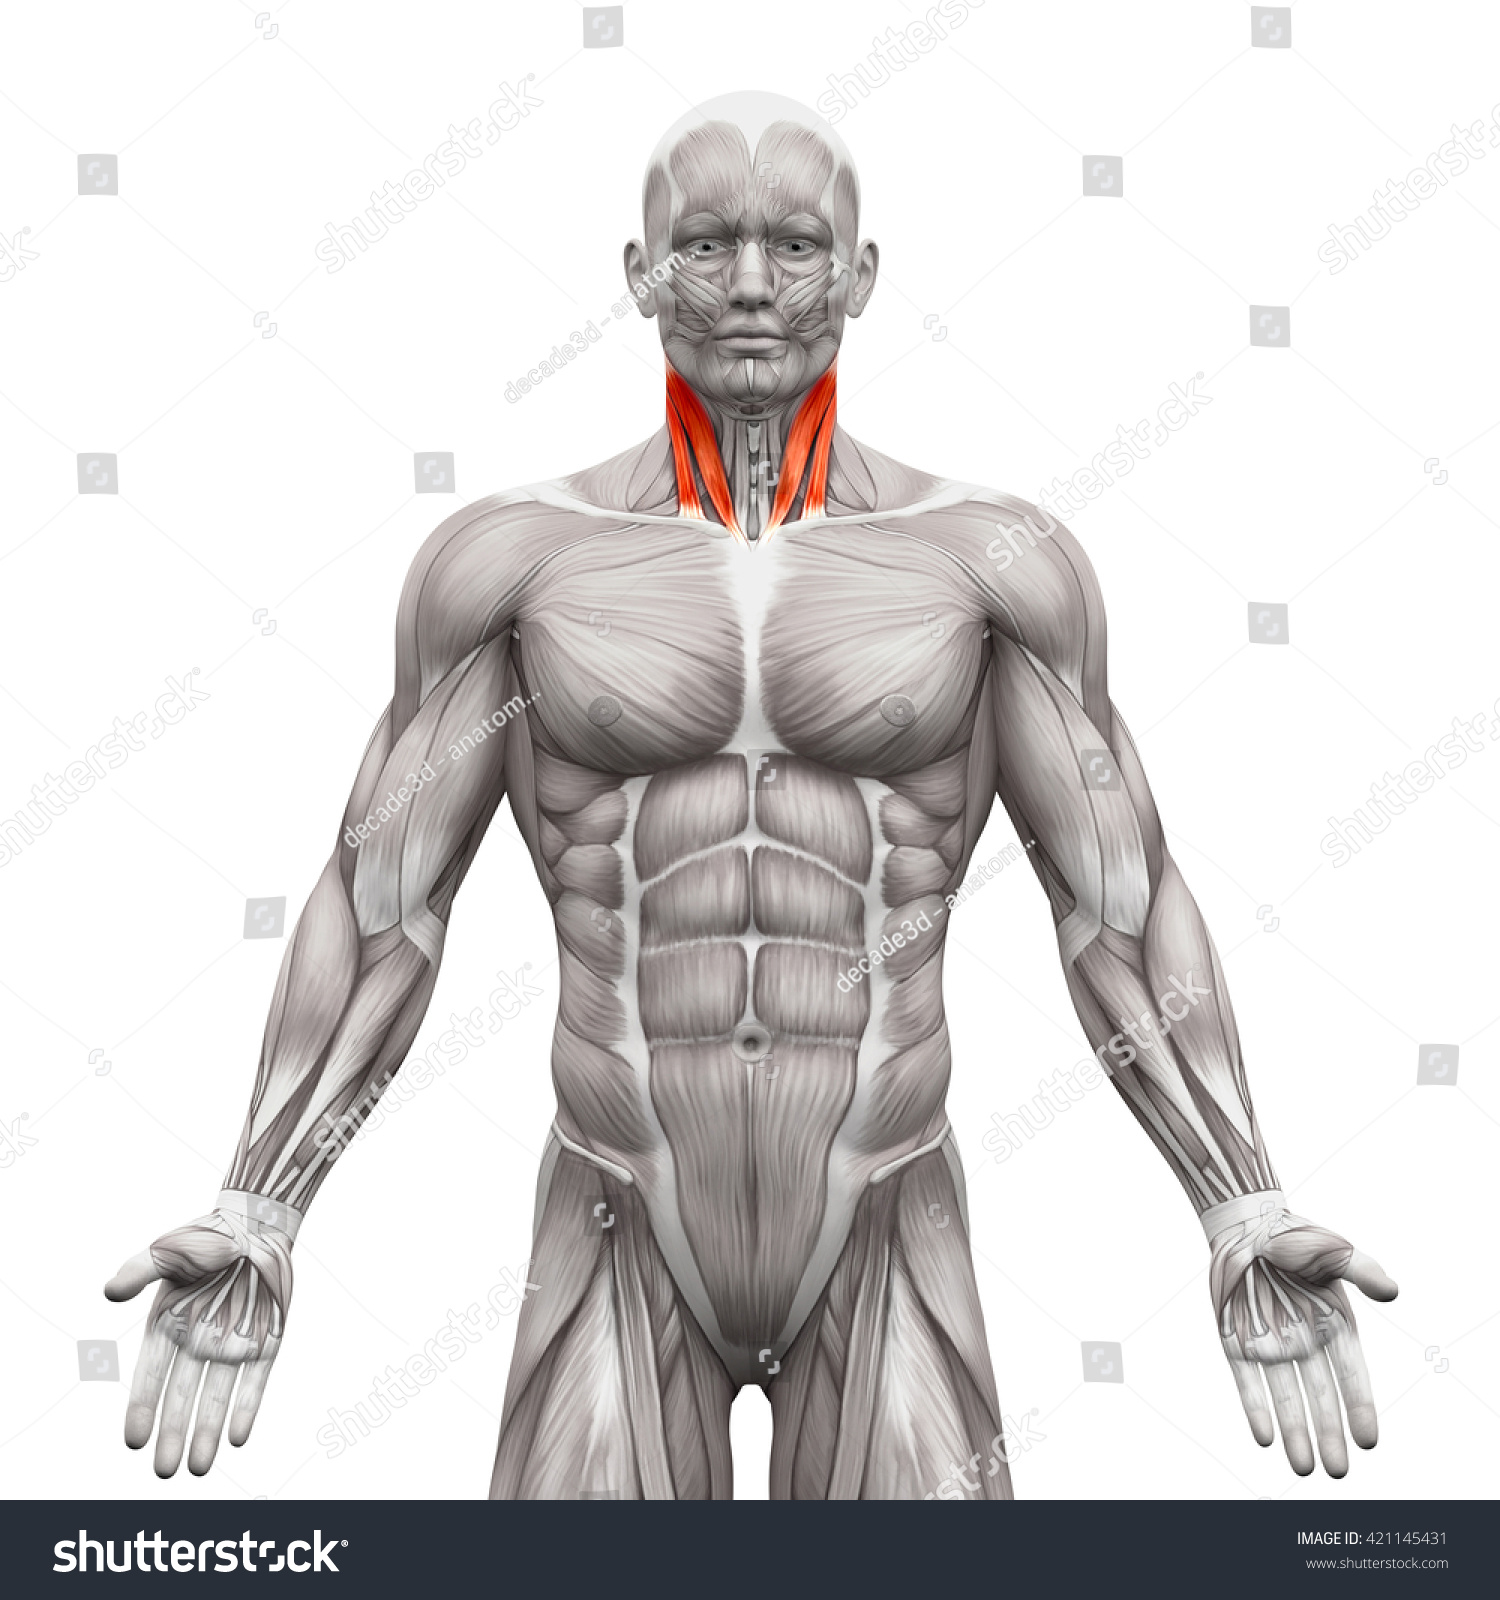 Neck Sternal Clavicular Head Anatomy Muscles Stock Illustration ...